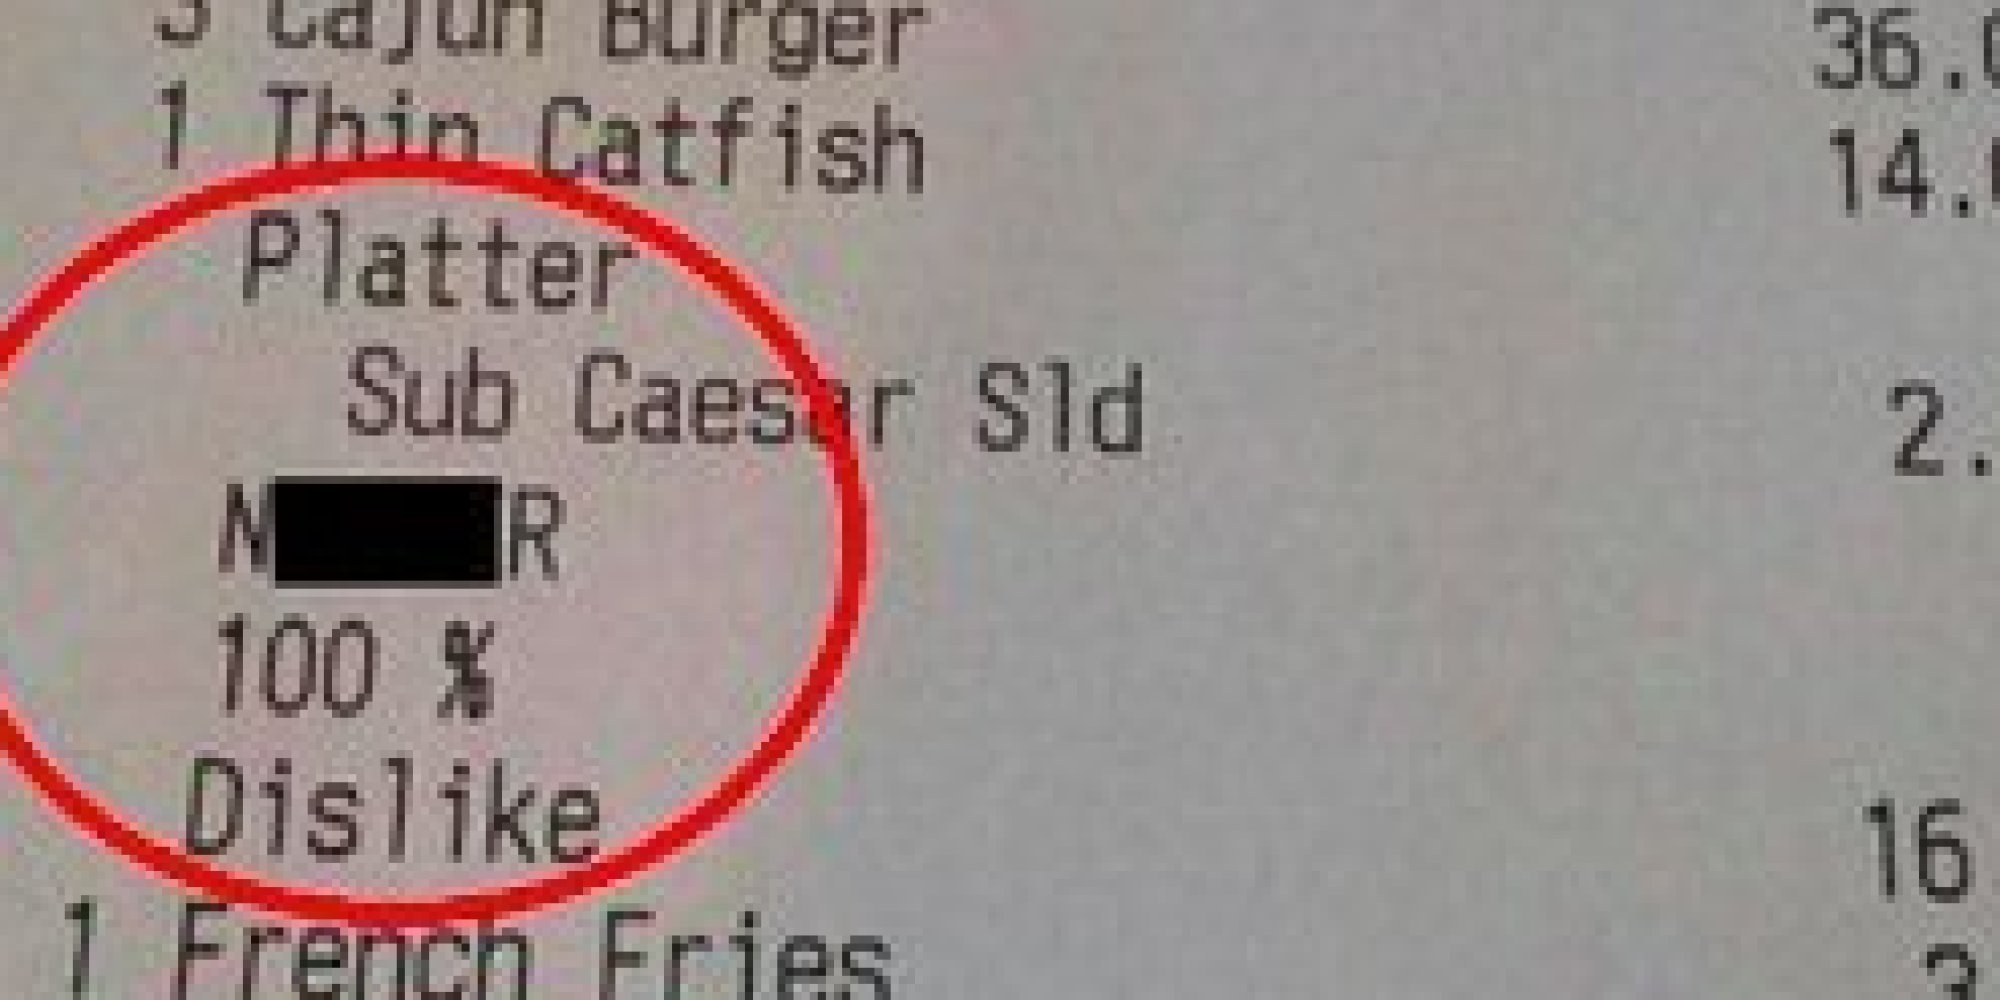 Australian restaurant fires staffer who issued receipt with racial slur